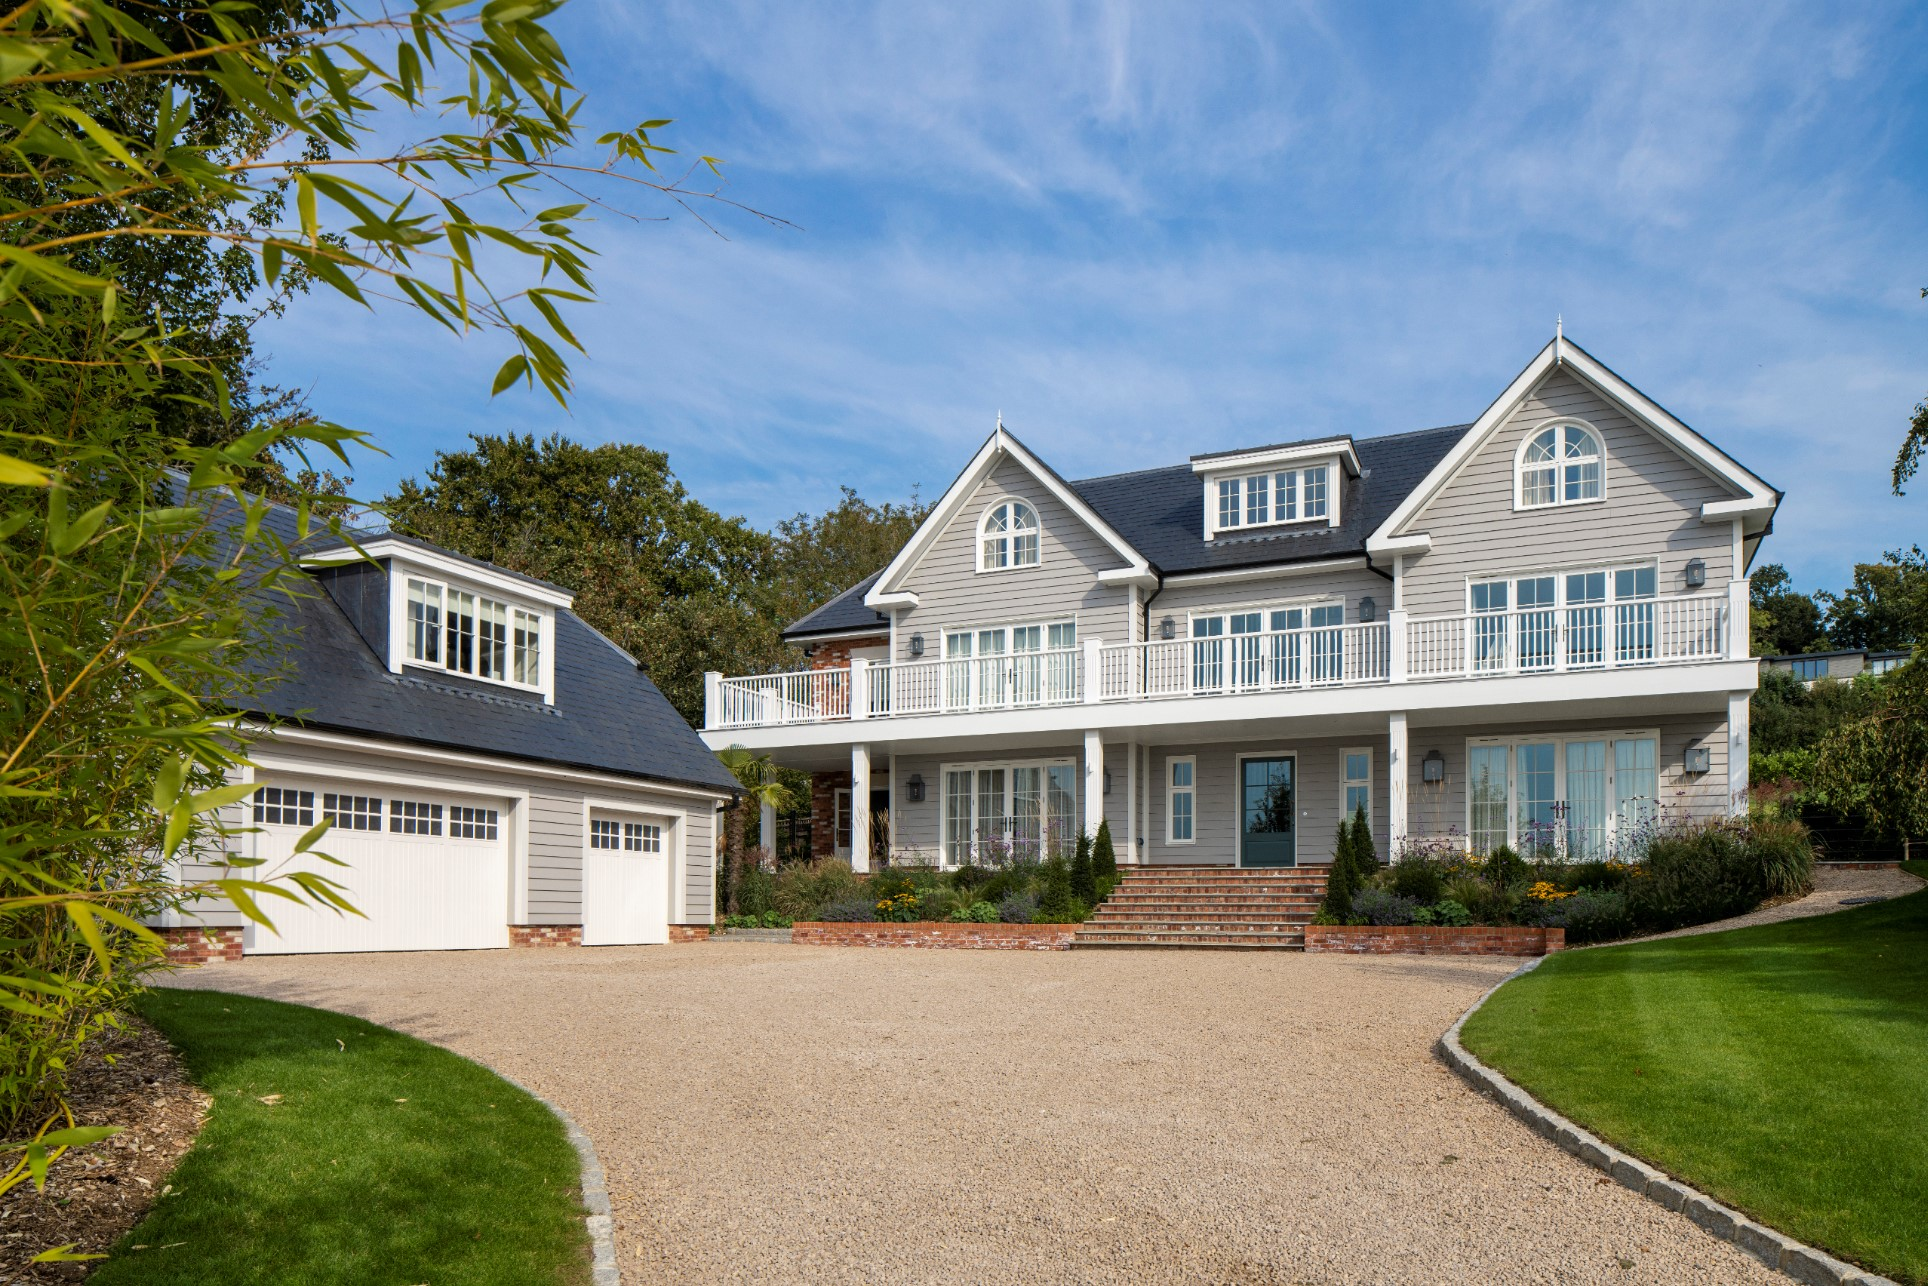 A large new white home with large driveway